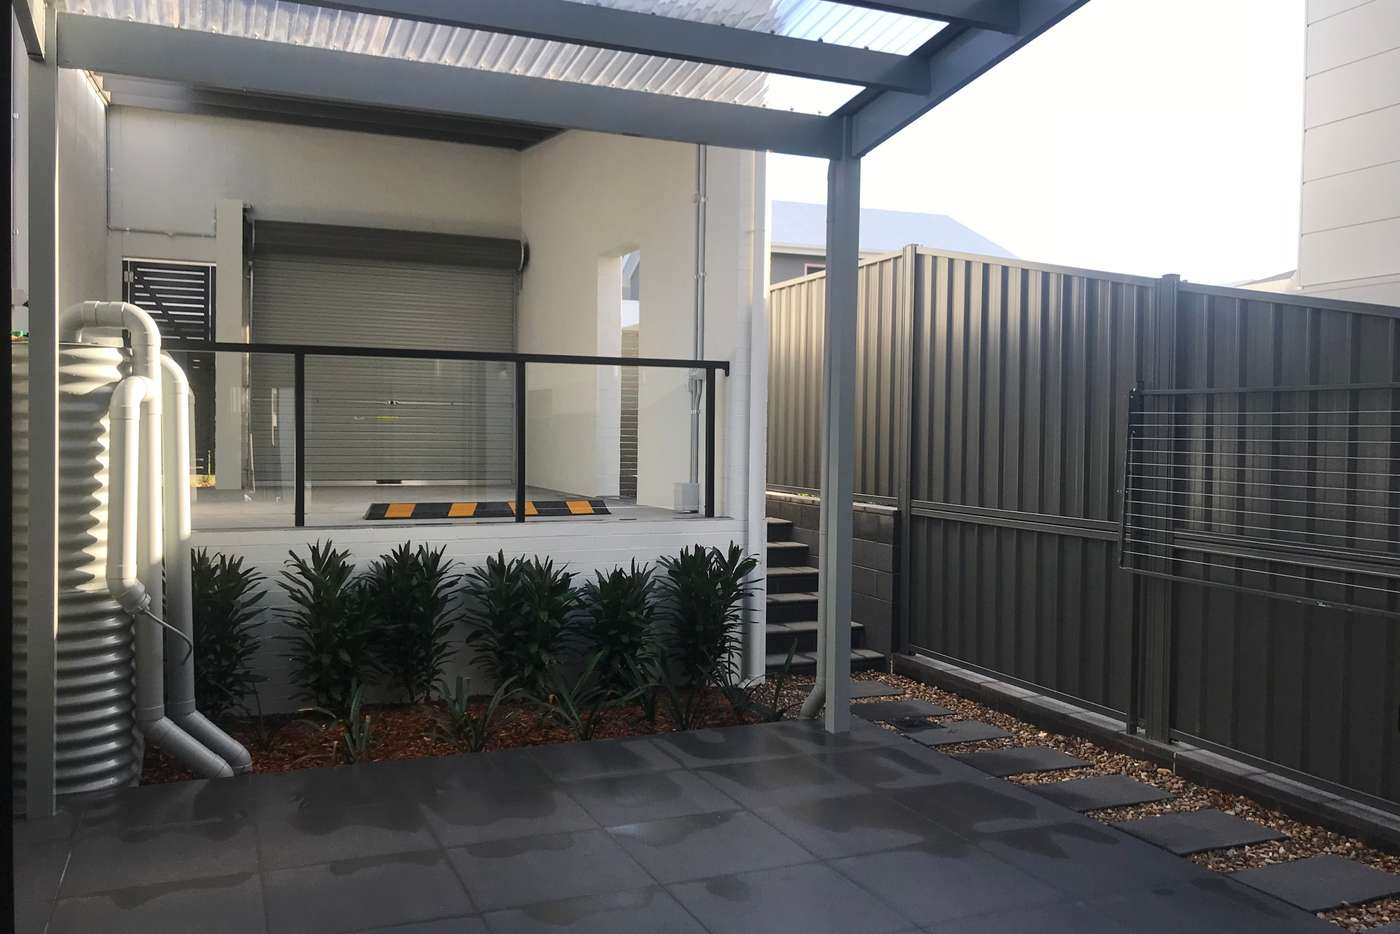 Seventh view of Homely house listing, 30 Anchorage Parade, Shell Cove NSW 2529